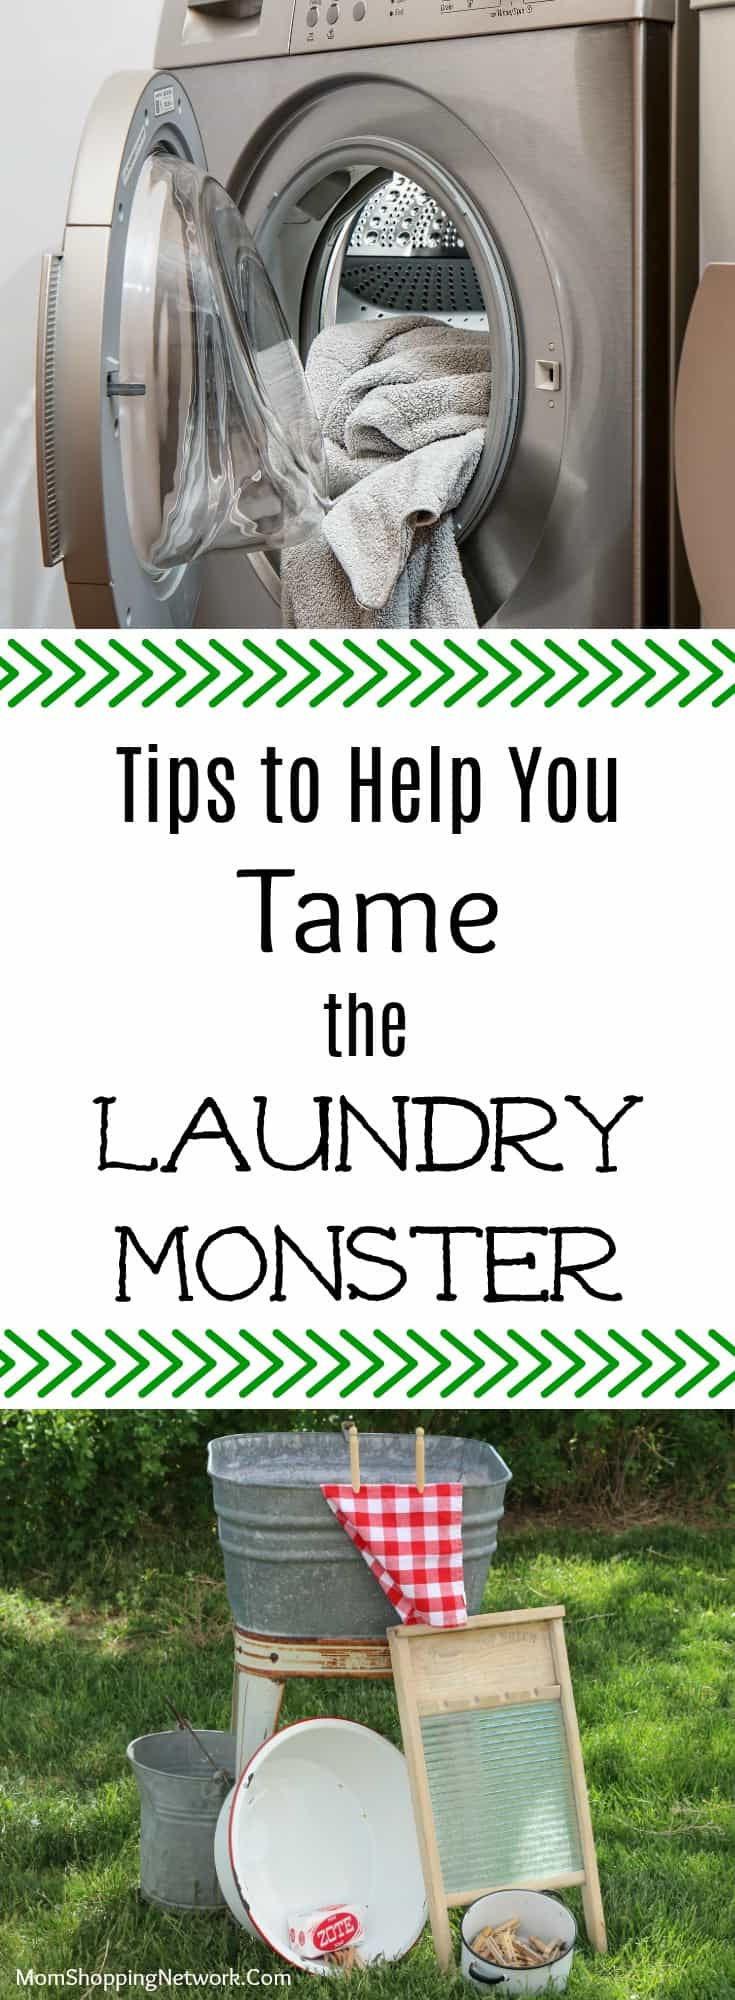 These laundry tips will help you tame the laundry monster once and for all!  #laundrytips #momshoppingnetwork #householdtips #laundry